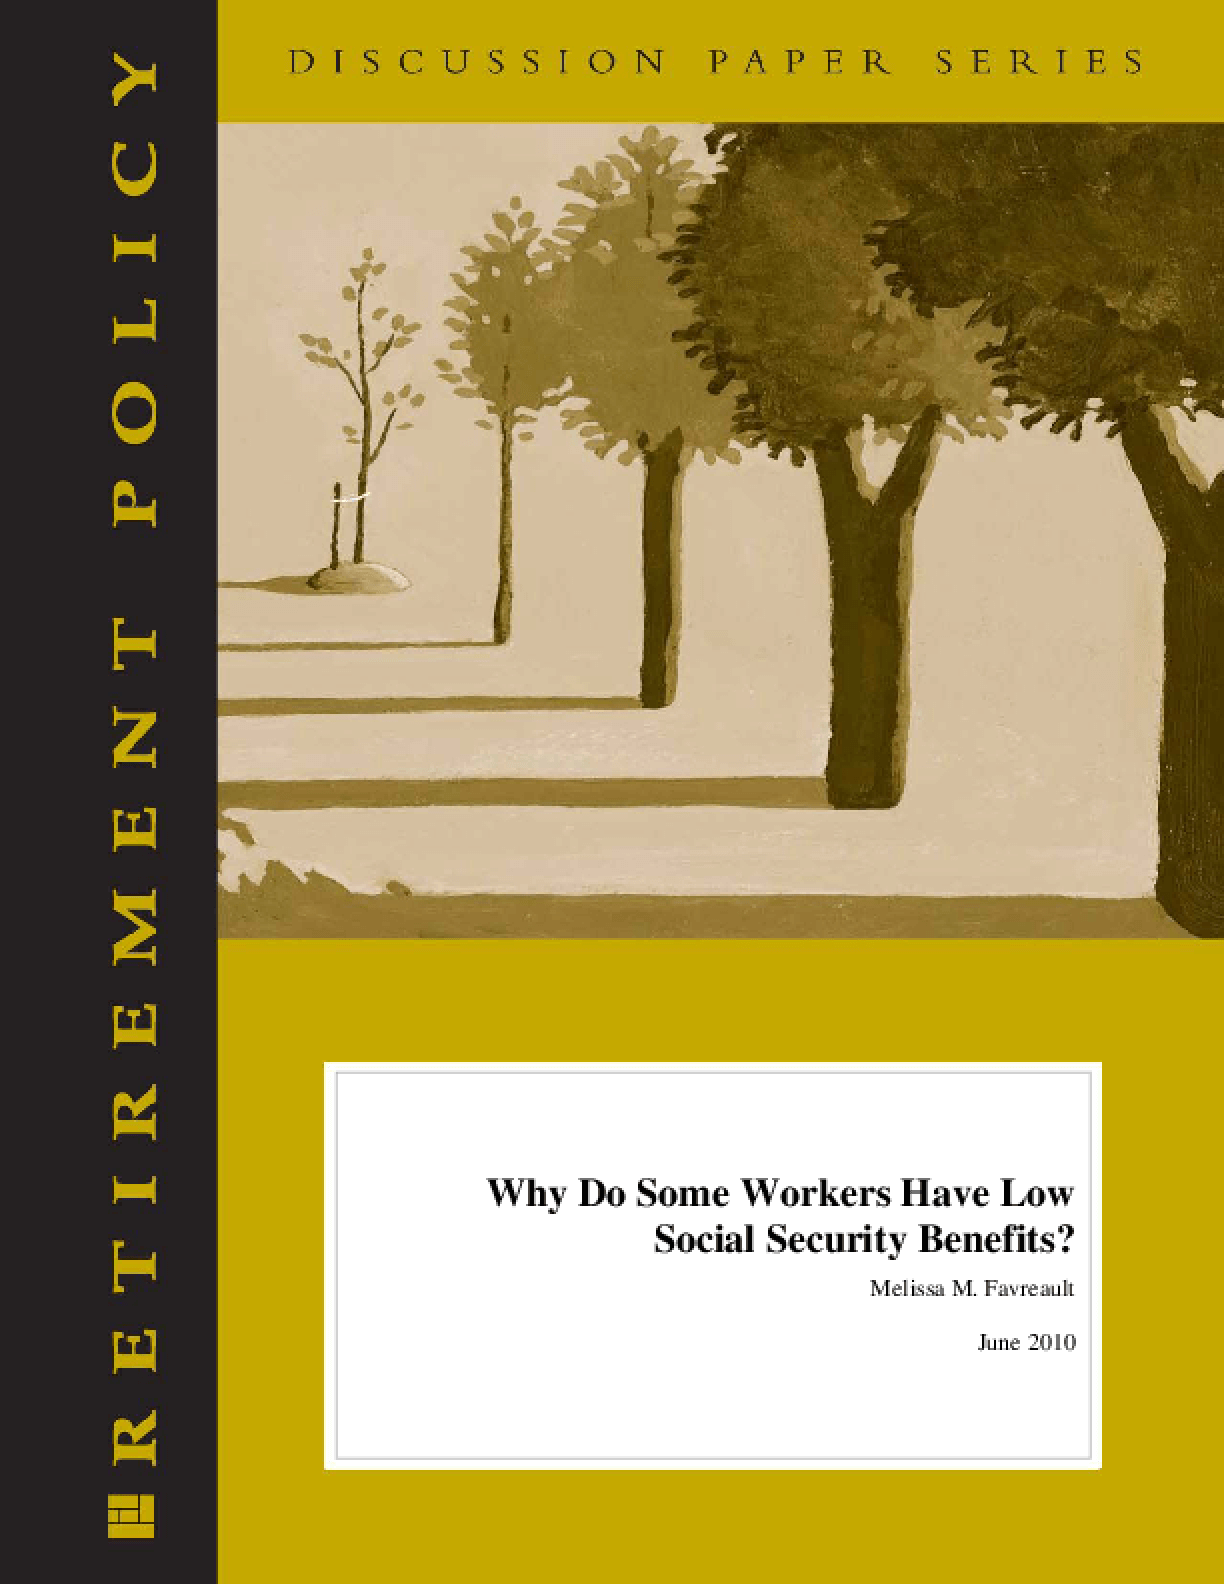 Why Do Some Workers Have Low Social Security Benefits?